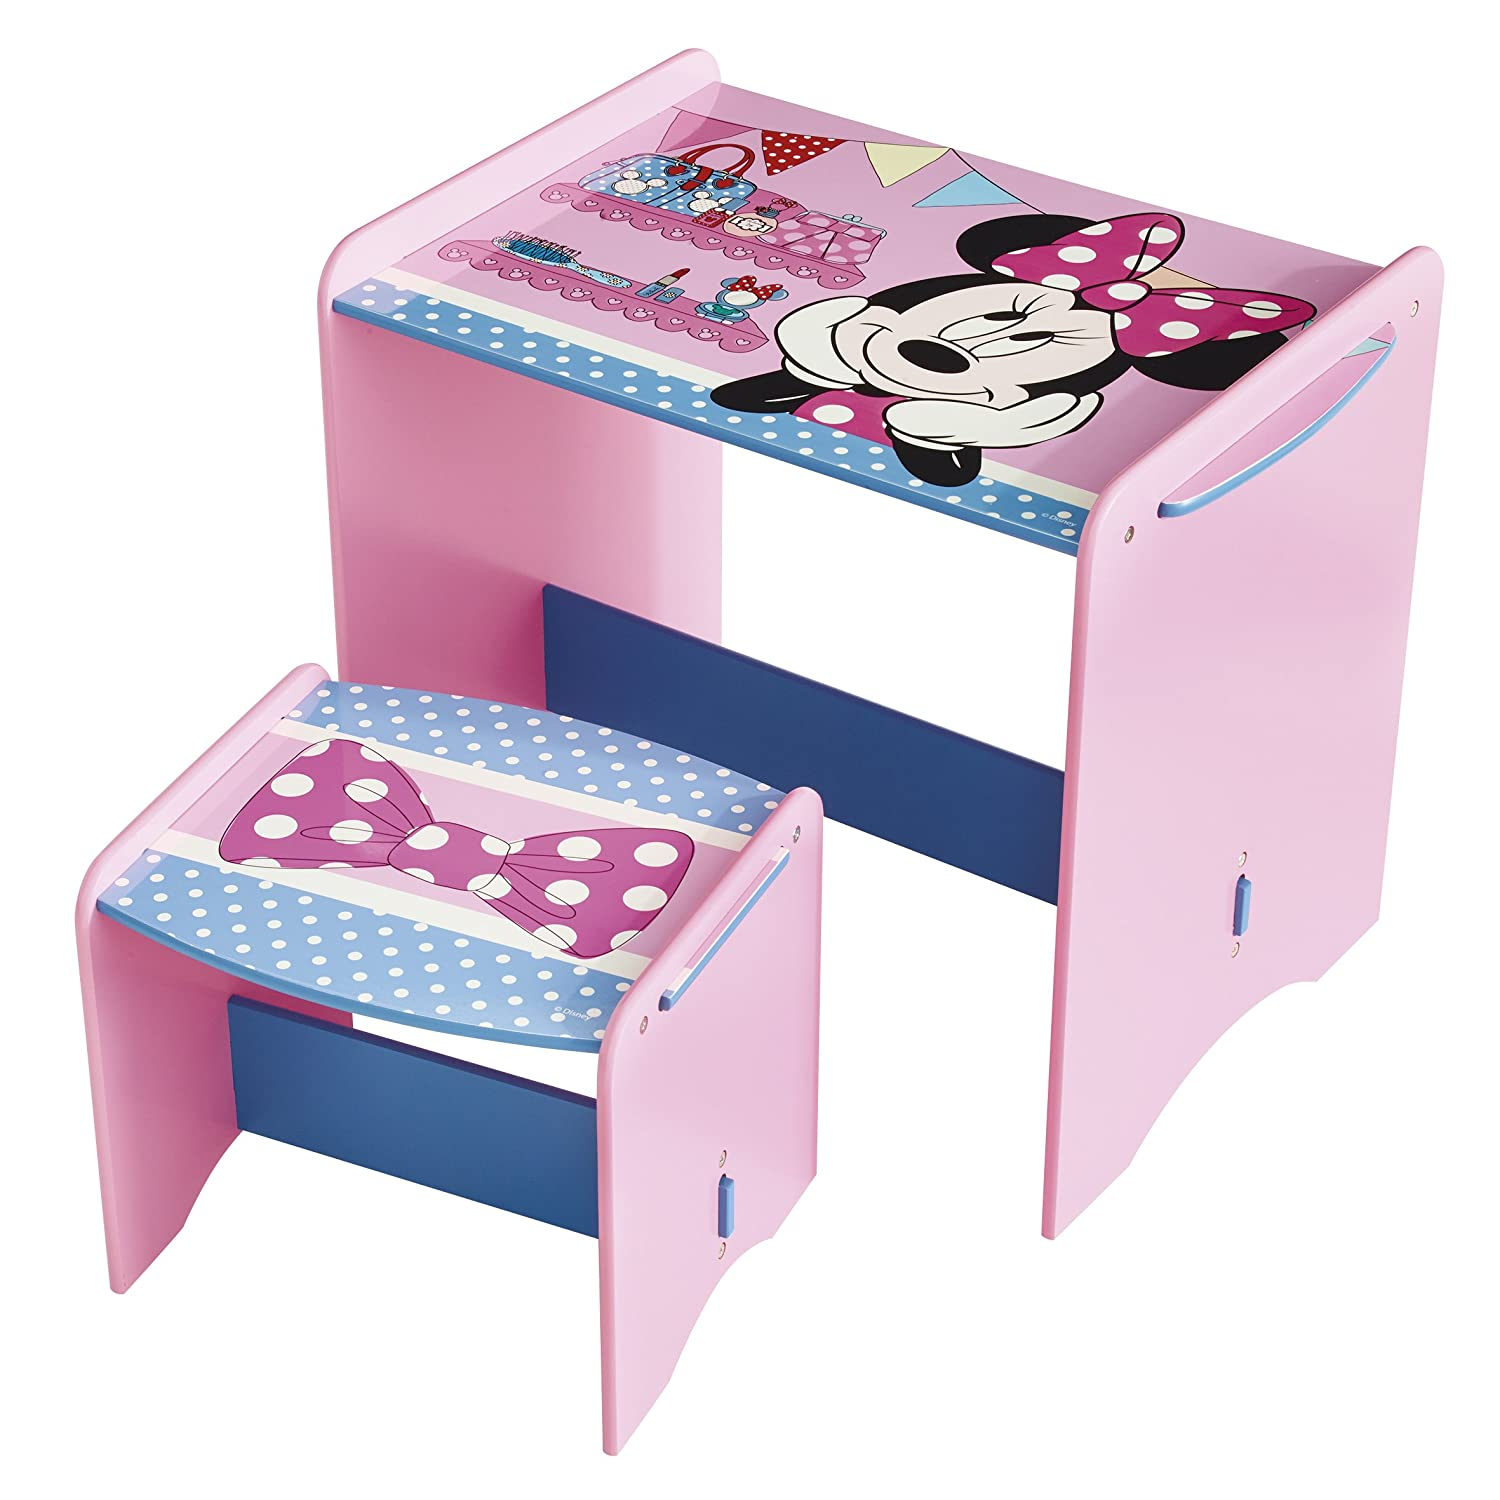 coffre a jouet bureau cheap rangement enfant pratique verbaudet with coffre a jouet bureau. Black Bedroom Furniture Sets. Home Design Ideas